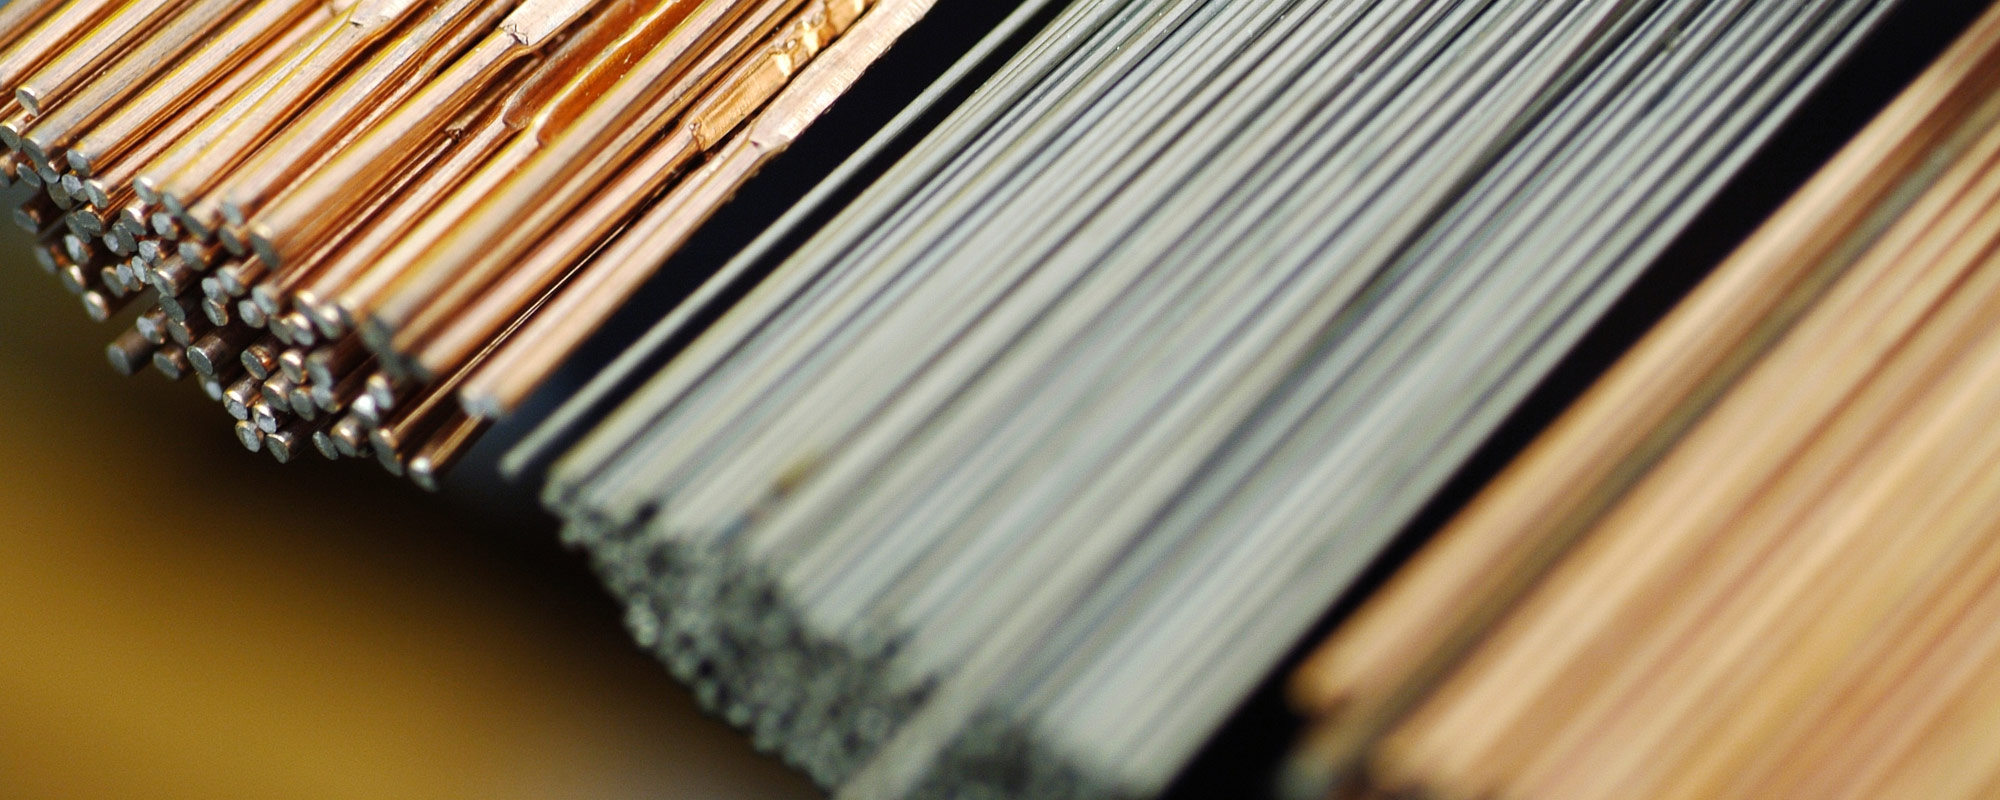 Non Ferrous Metals - Delivered Nationwide by West Yorkshire Steel ...